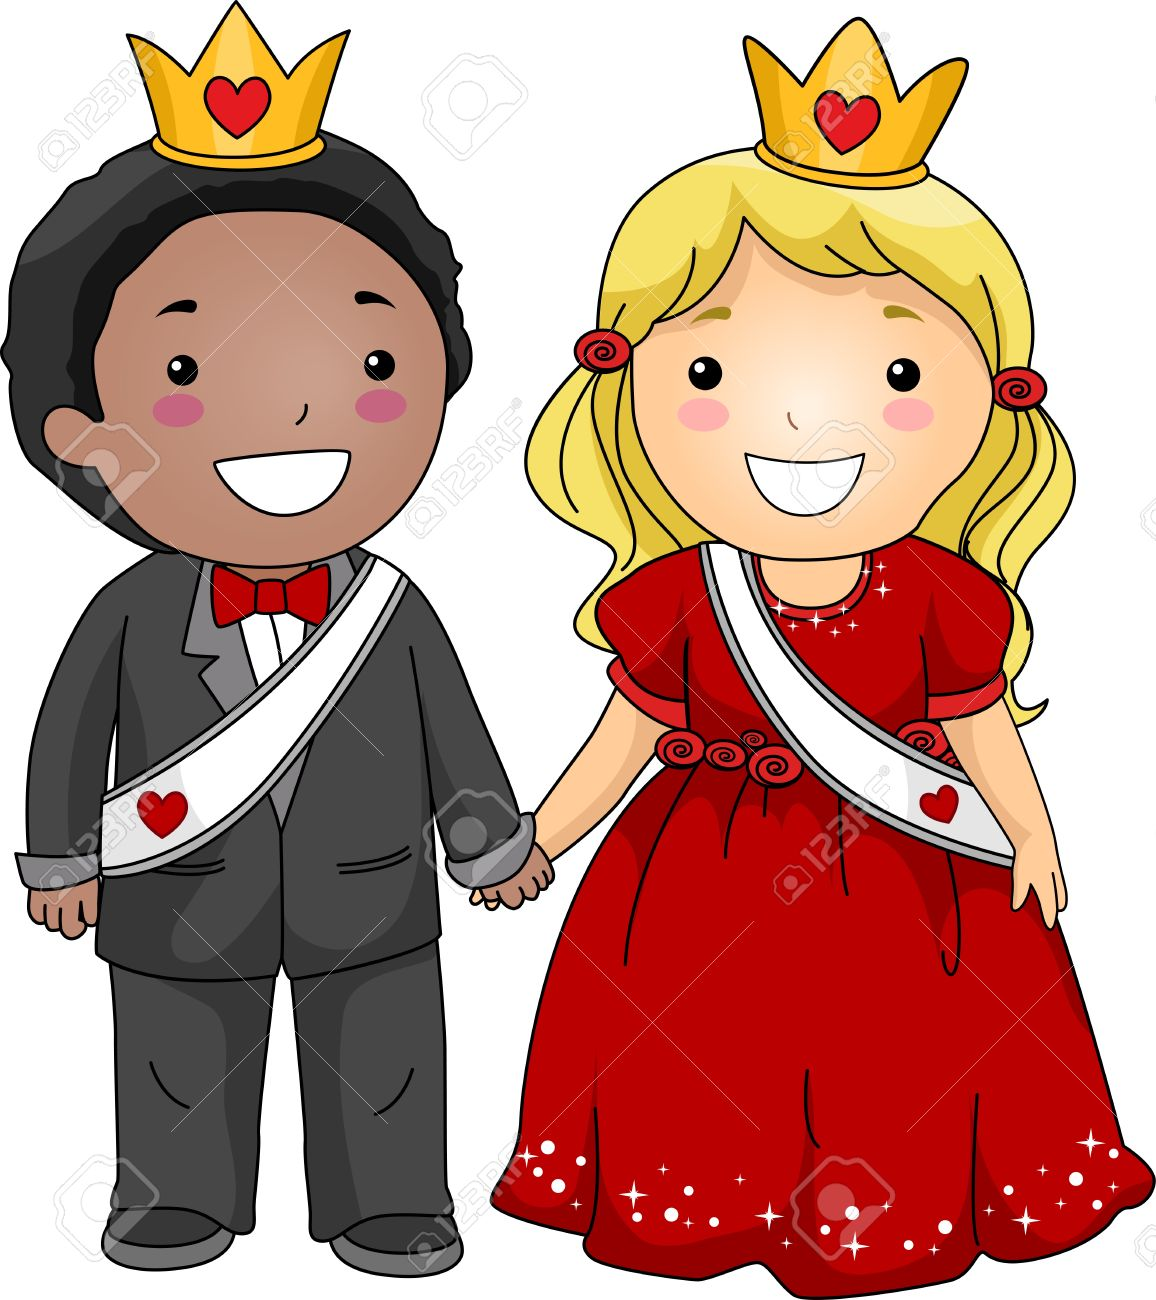 Baby queen clipart clipart royalty free Free Queen Lion Cliparts, Download Free Clip Art, Free Clip Art on ... clipart royalty free